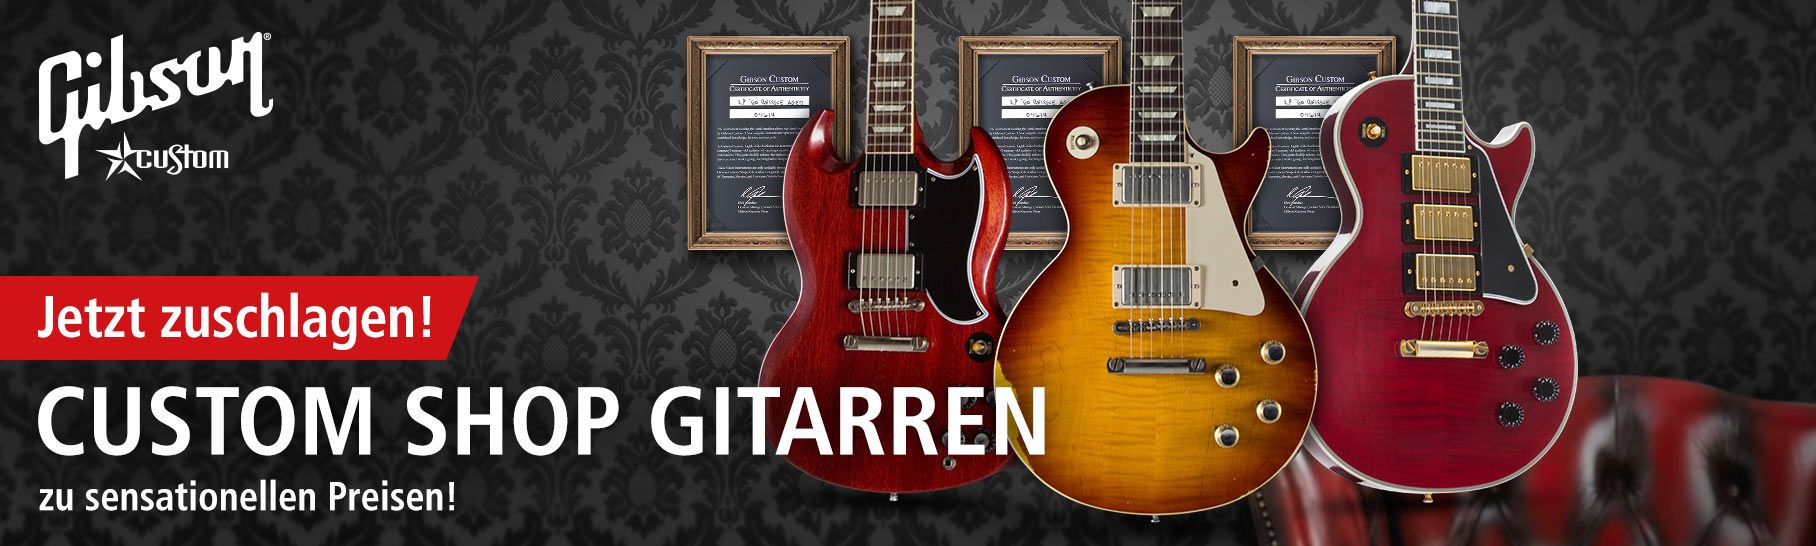 MusicStore-MusicStoreShop:/static-pages/Gibson-Deal-2015/GIT_Gibson-Customshop-2017_DE.jpg